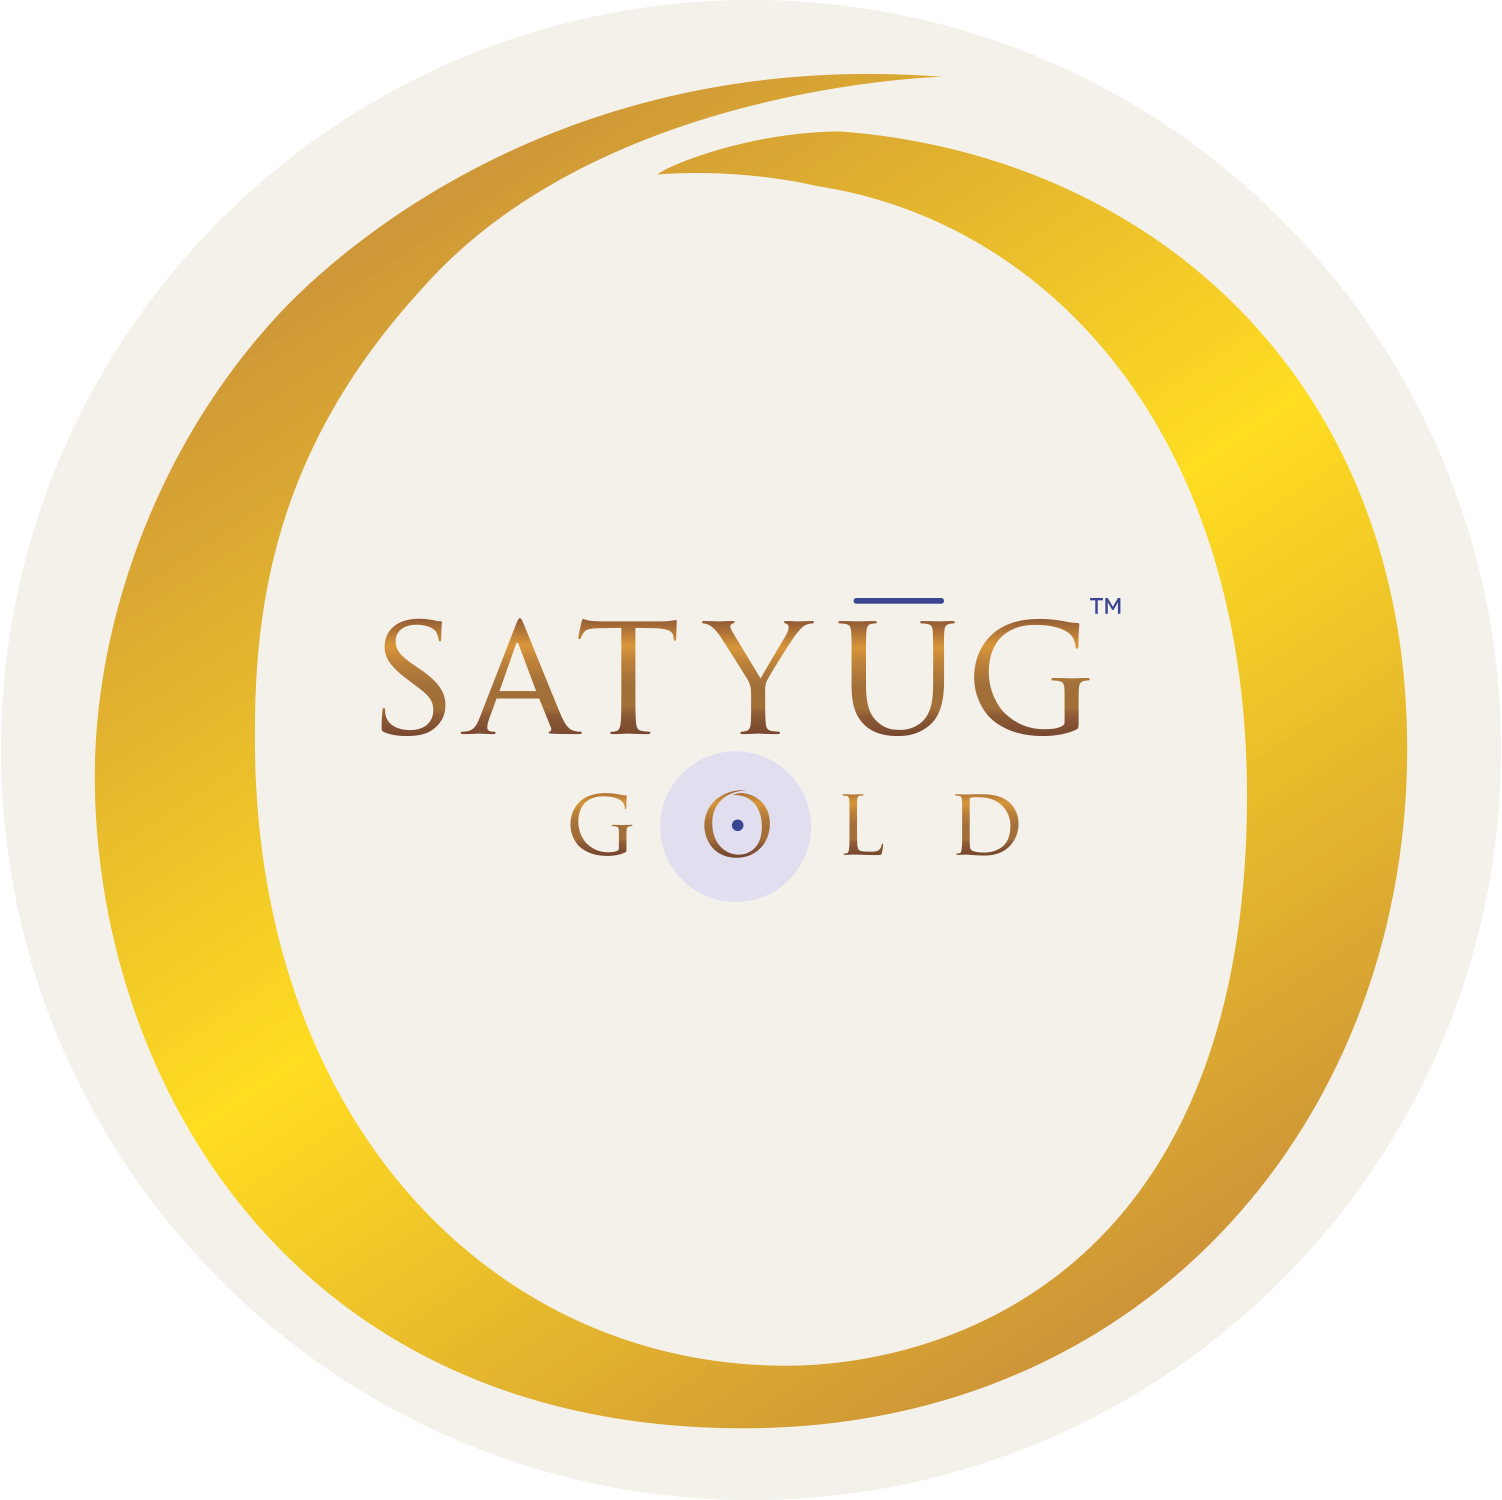 Profitable Satyug Group Jewellery Franchise For Sale In Mumbai, Maharashtra, India